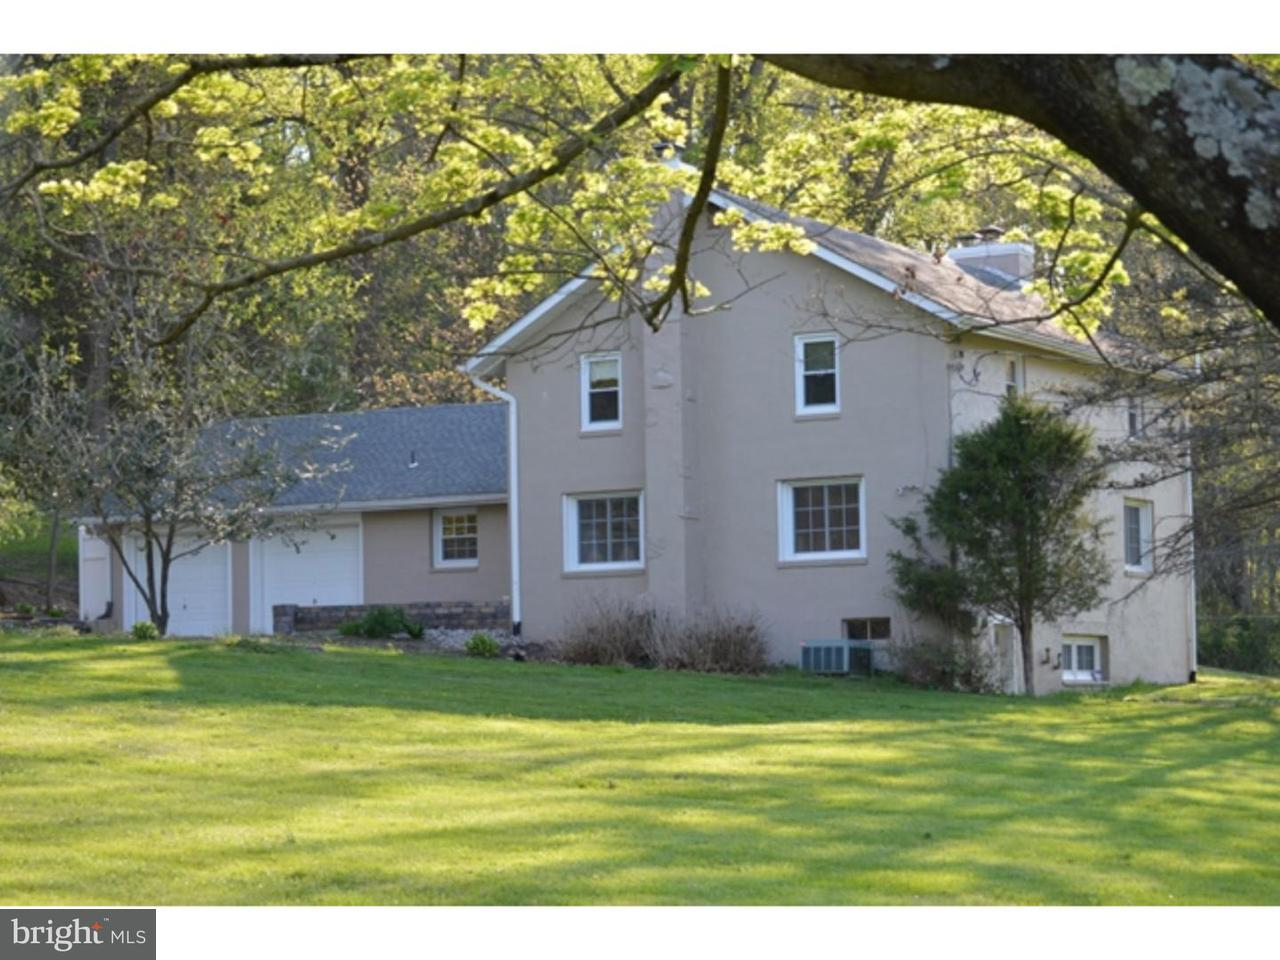 Single Family Home for Rent at 132 HESS MILL Road Landenberg, Pennsylvania 19350 United States